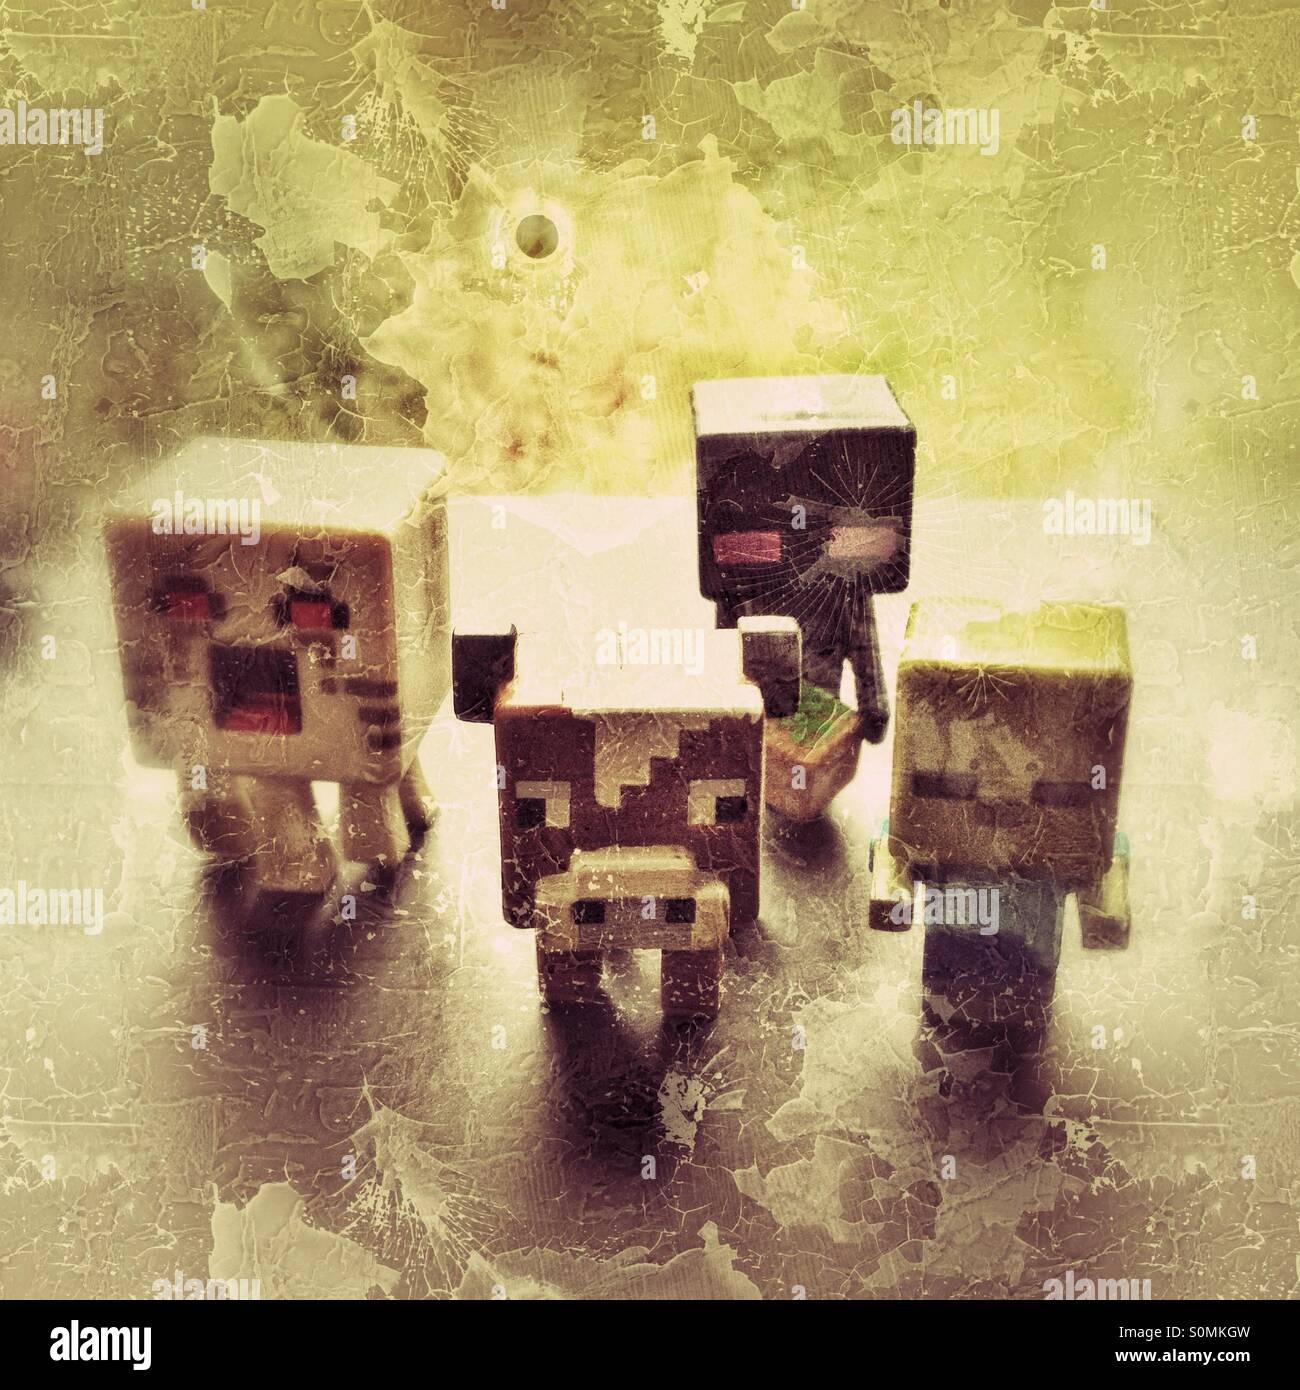 Plastic characters from Minecraft - Stock Image